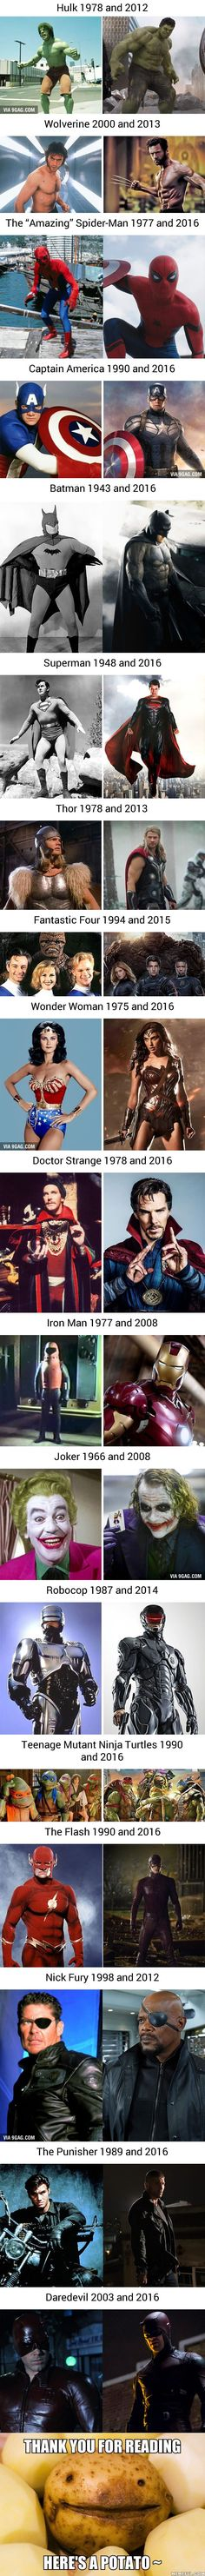 On Screen Superheros Then And Now - 9GAG